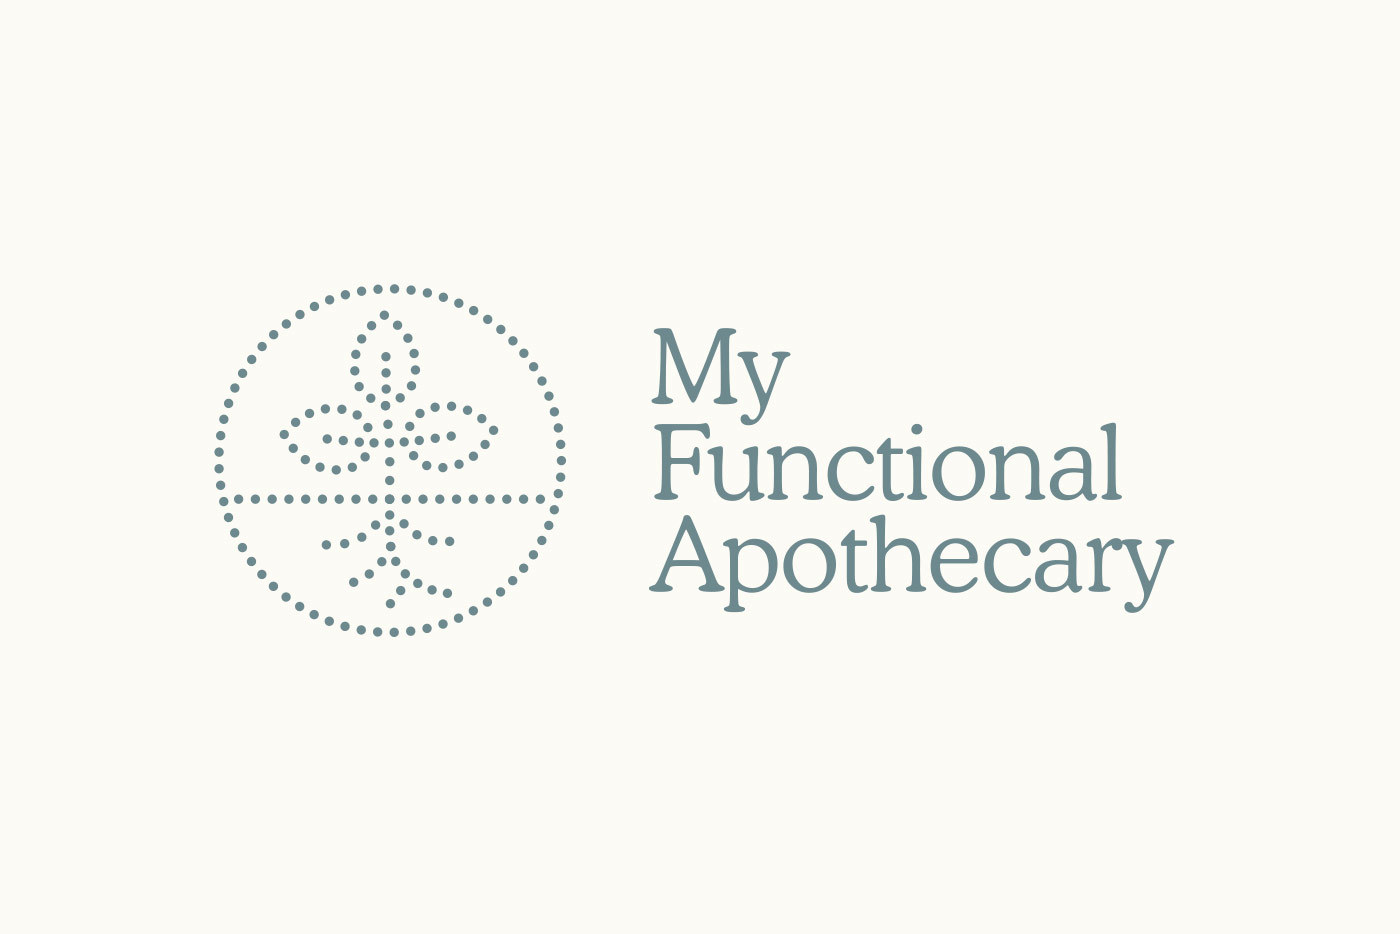 My Functional Apothecary Branding Logo Identity